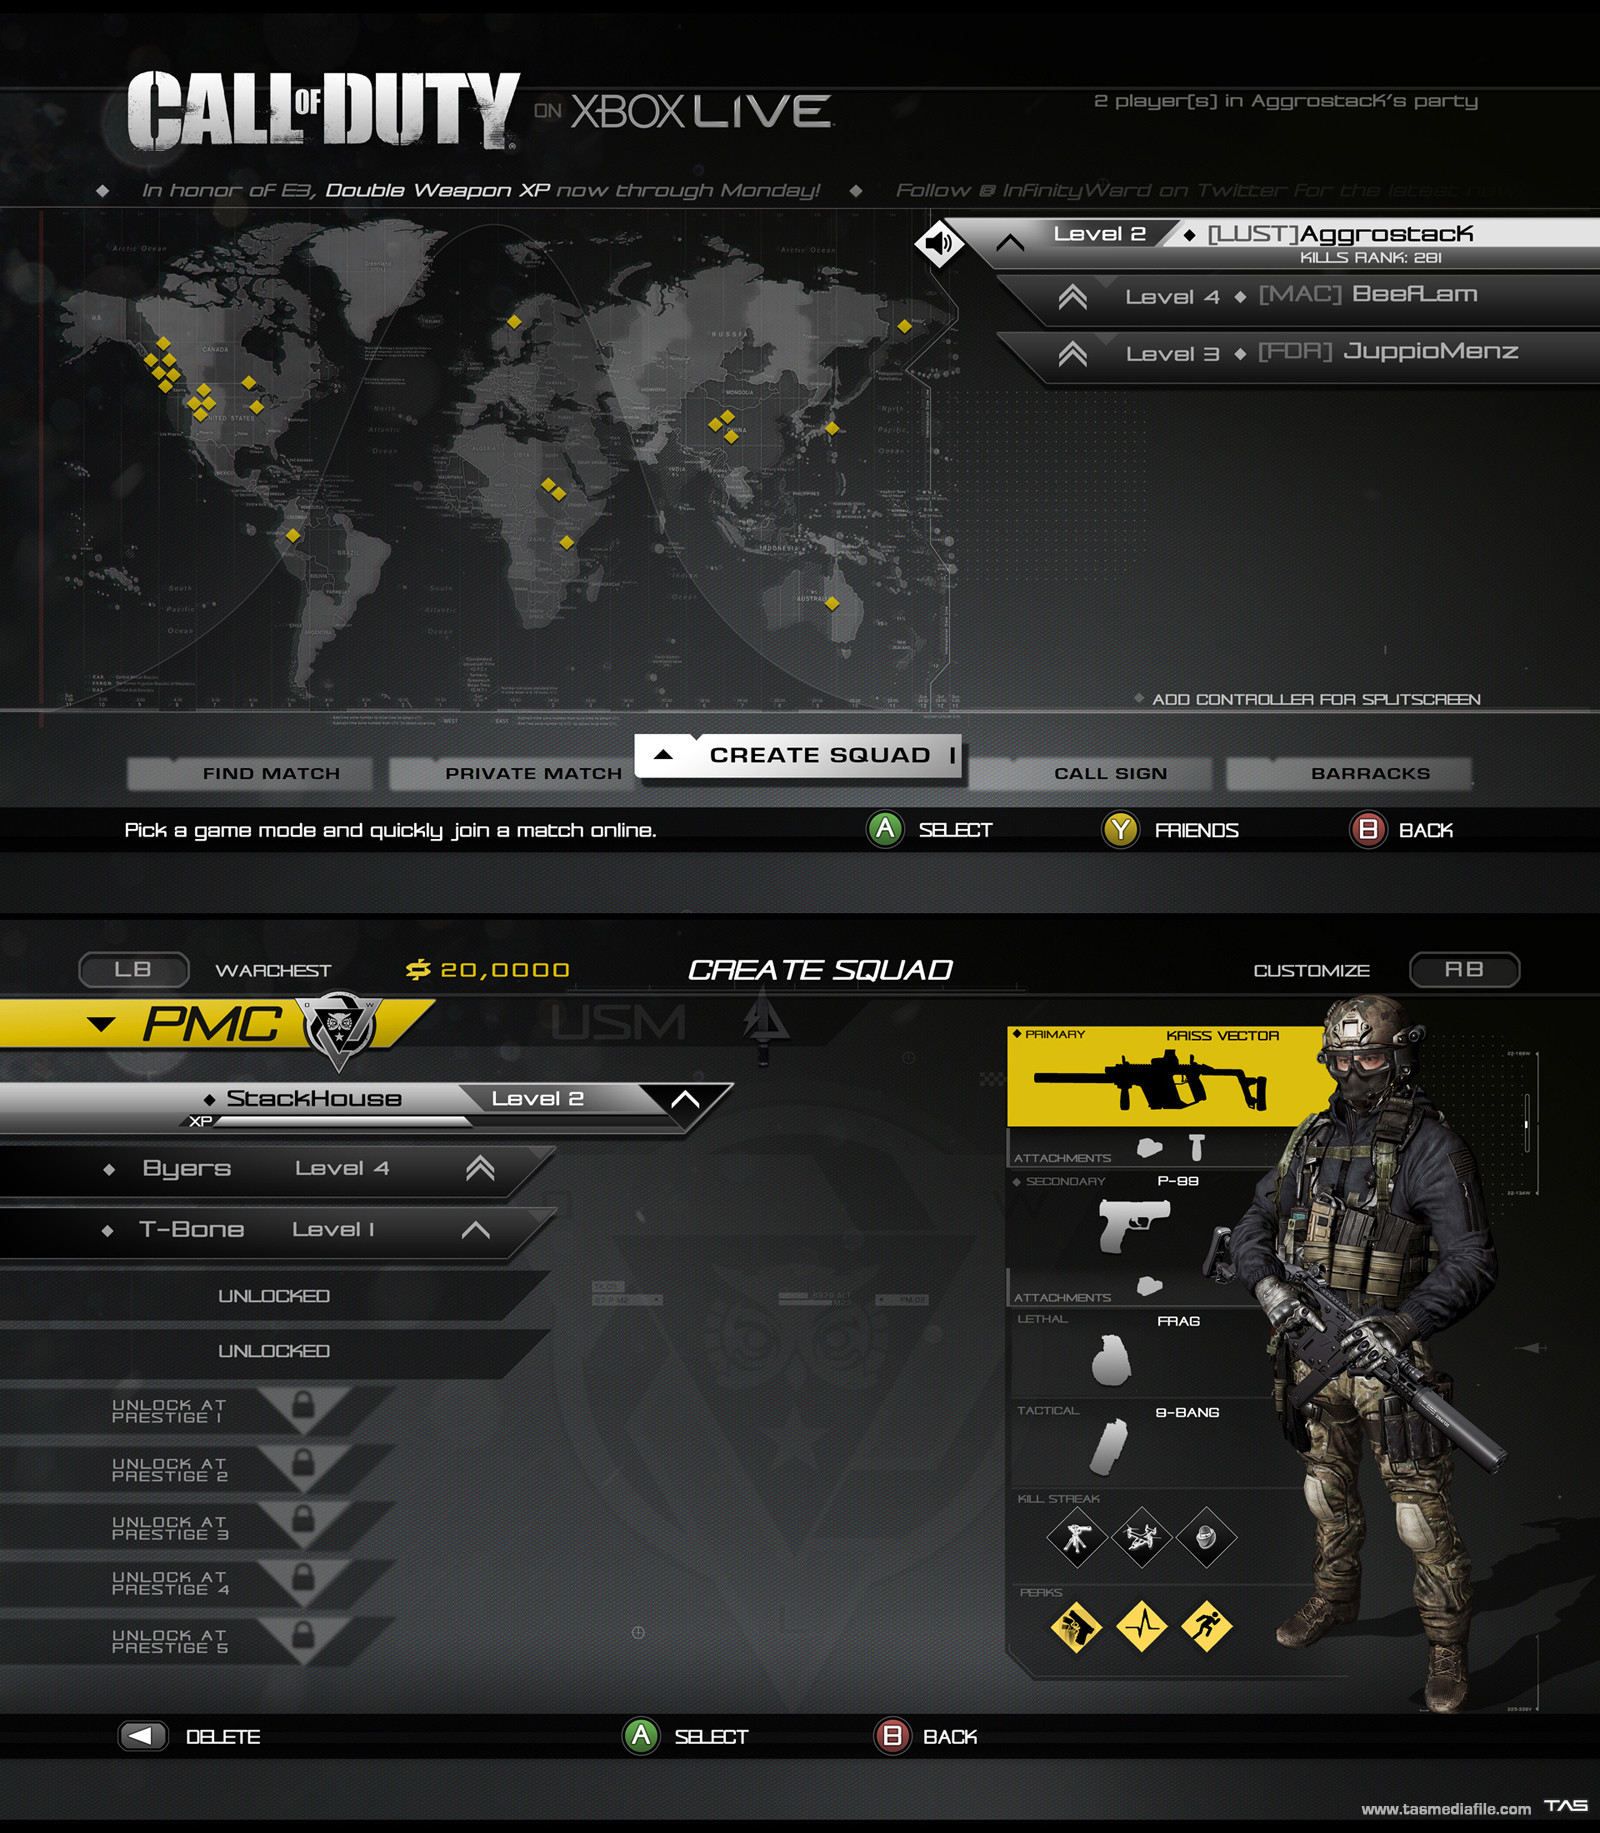 Thomas a szakolczay codghosts multiplayer uiconcept tasmediafile